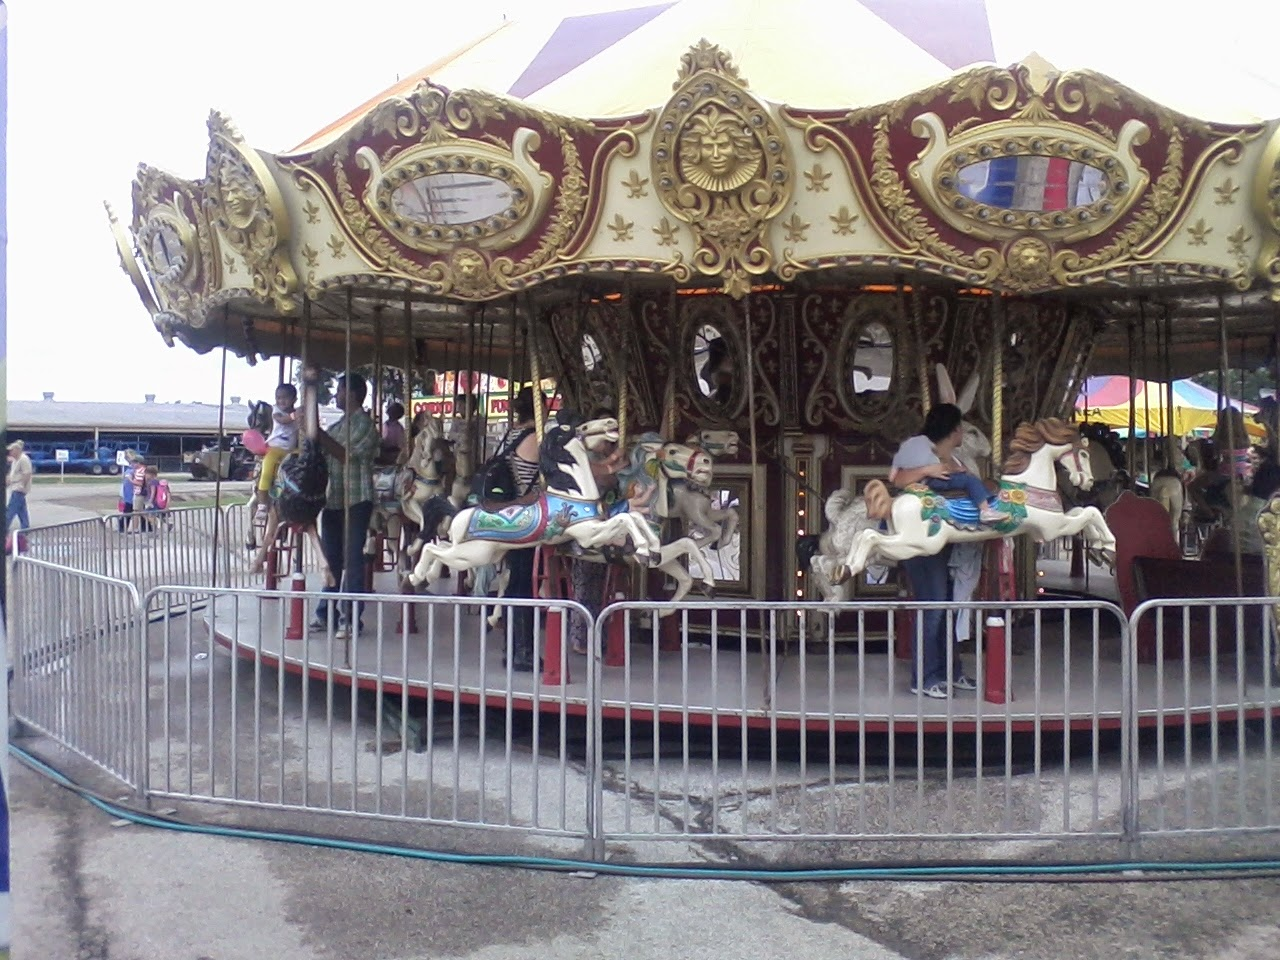 Fort Bend County Fair 2014 - 0927124244.jpg